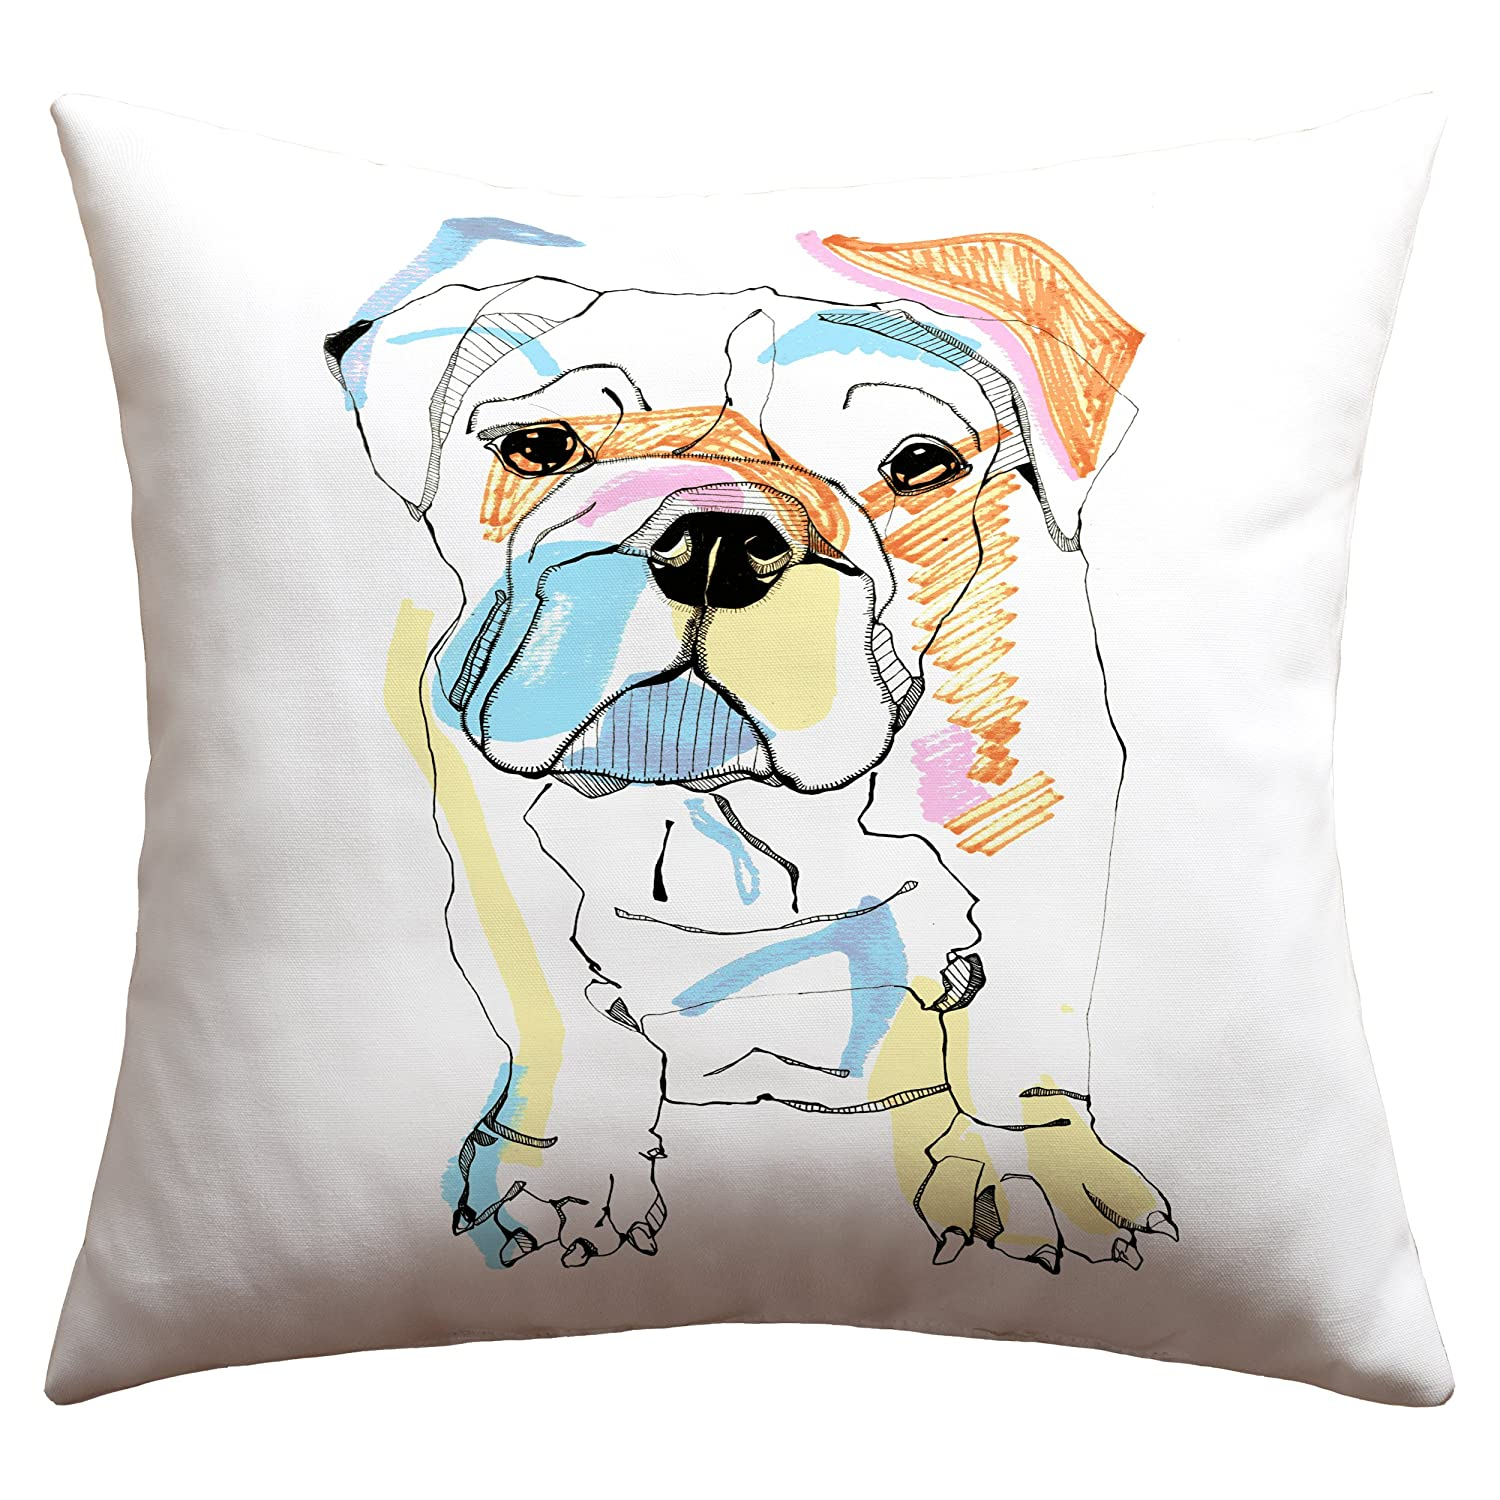 DENY Designs Casey Rogers Bulldog Color Outdoor Throw Pillow, 16-Inch by 16-Inch 13966-othrp16